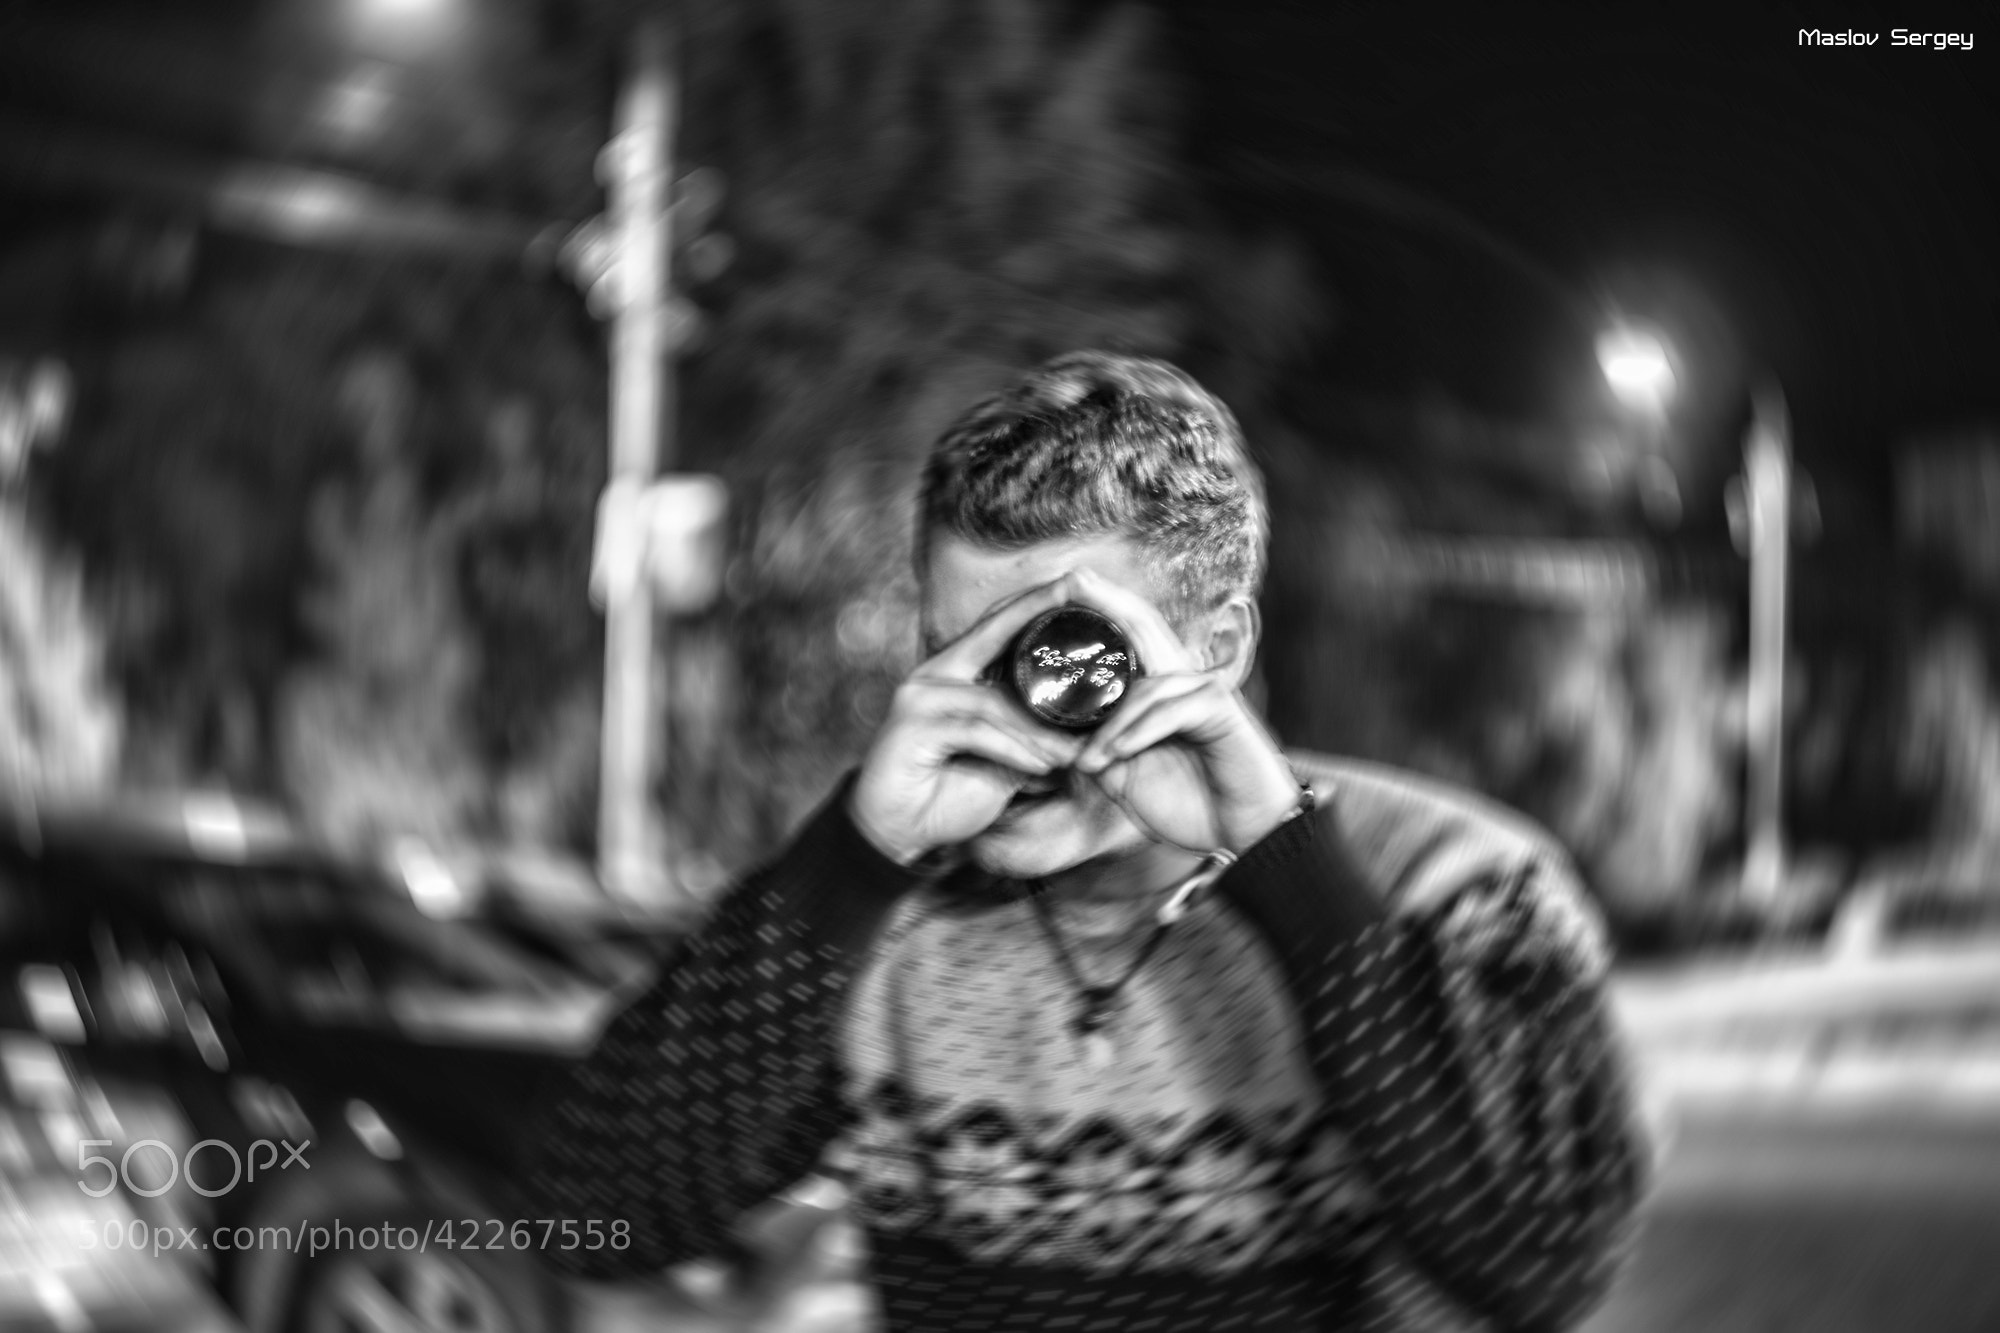 Photograph Lens male by Sergey Maslov on 500px